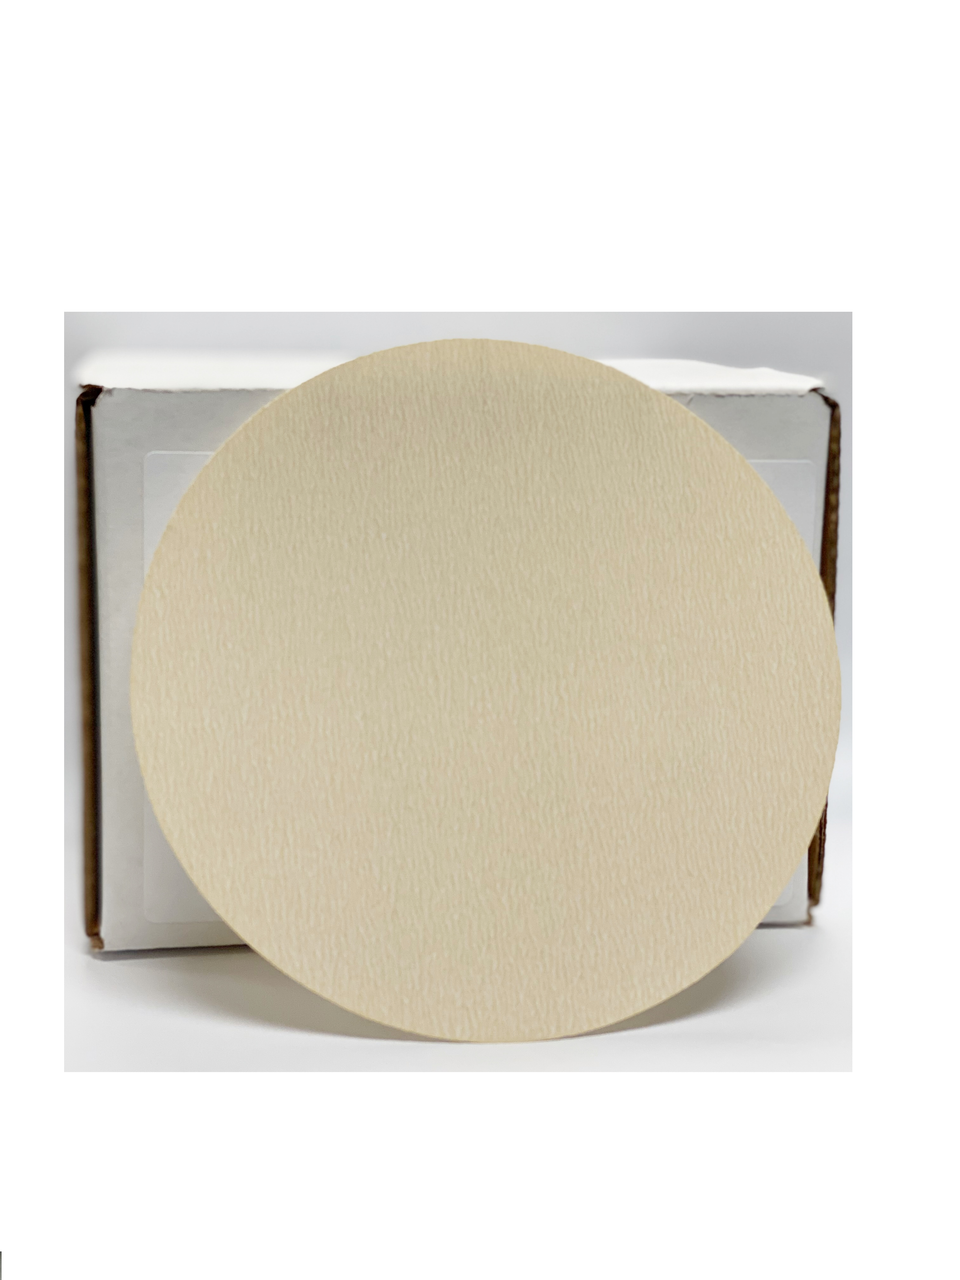 "Elite White Plus 5"" Non-Vac Grip Discs, 150G (100/box)"